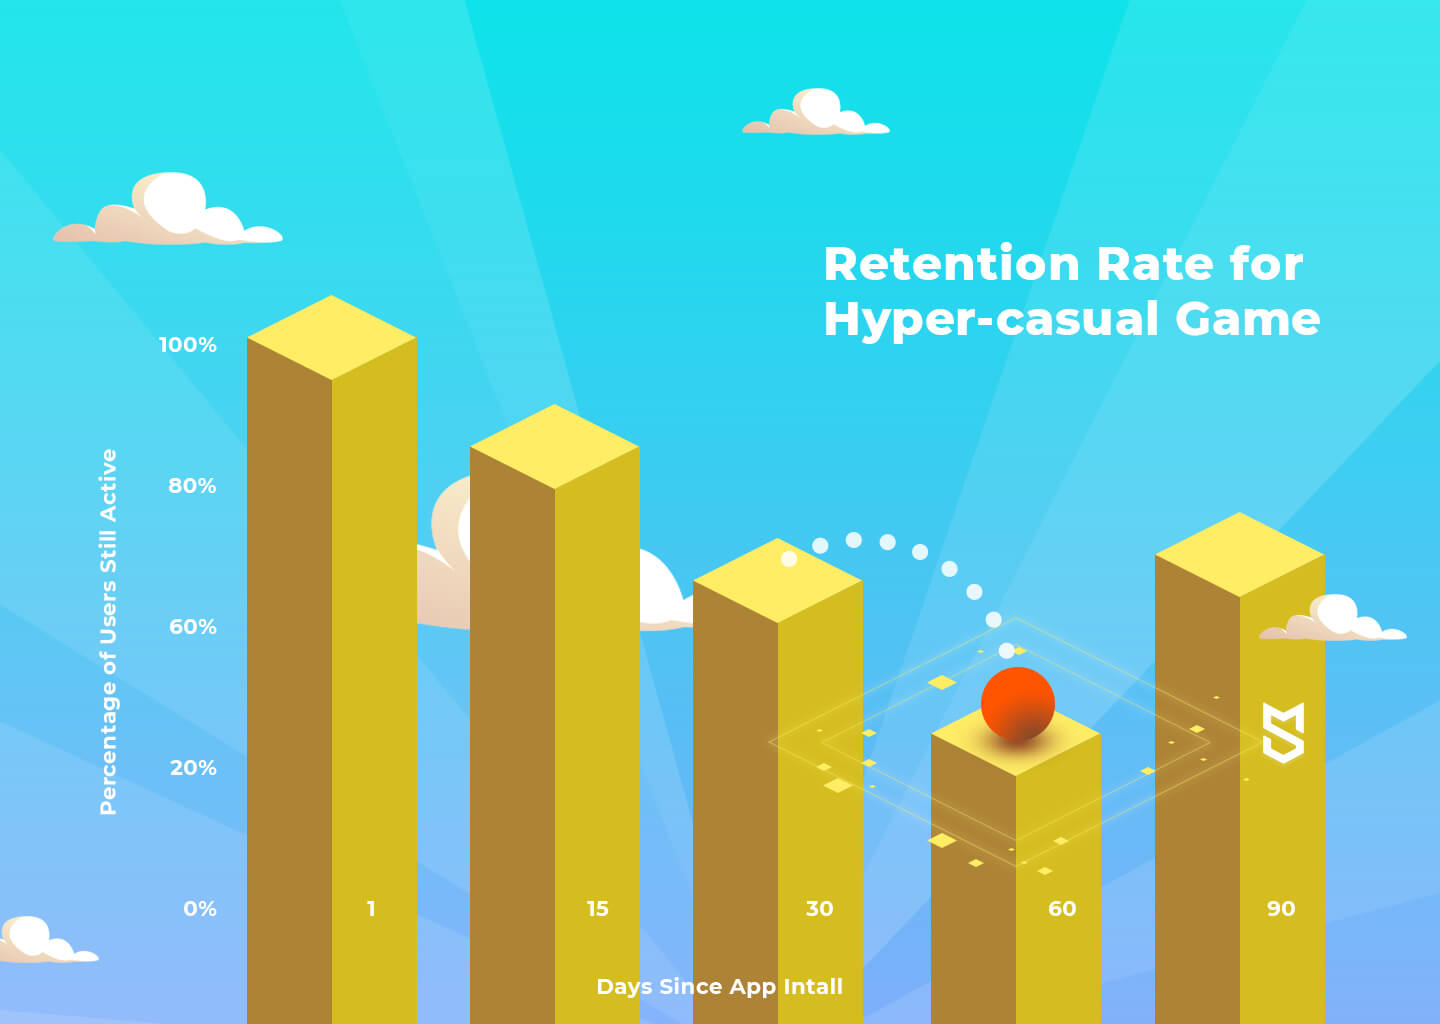 Retention Rate for hyper-casual games